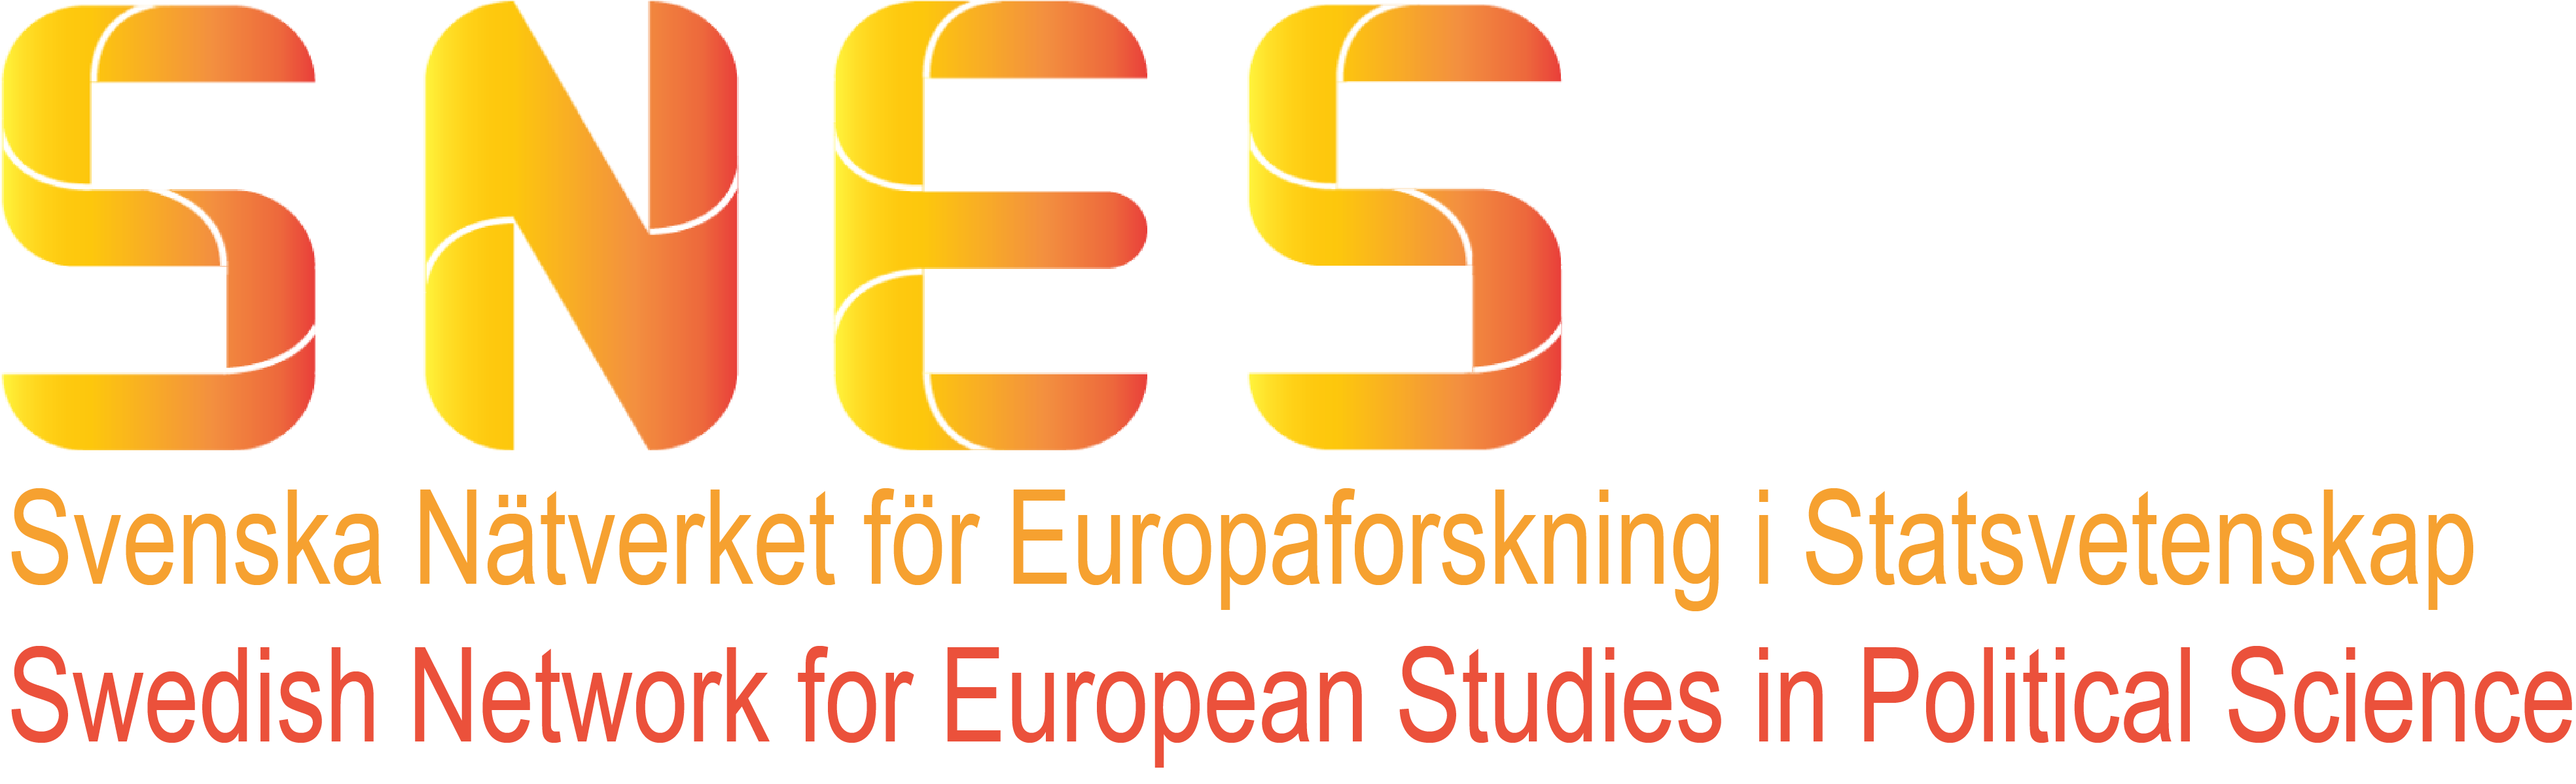 The Swedish Network for European Studies in Political Science